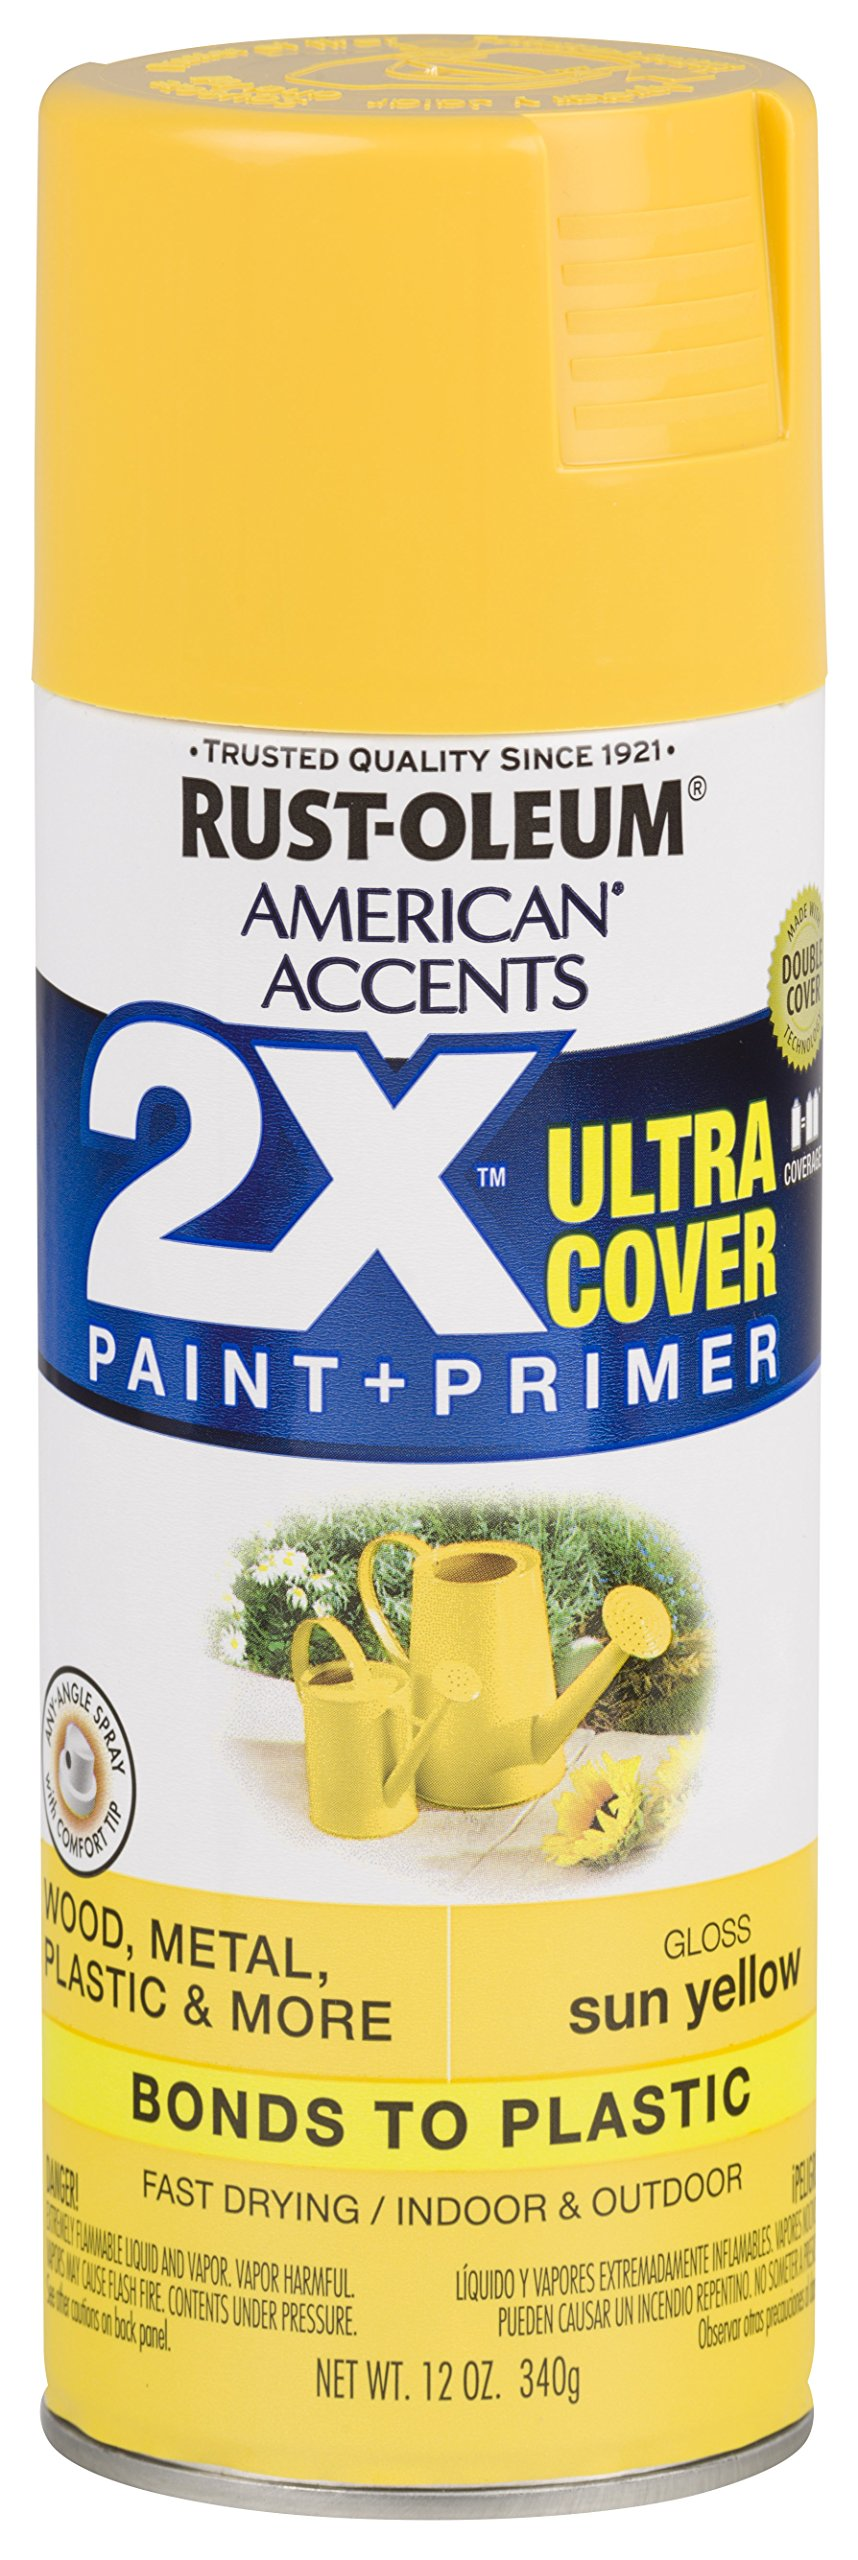 Rust-Oleum 327880 American Accents Spray Paint, Gloss Sun Yellow